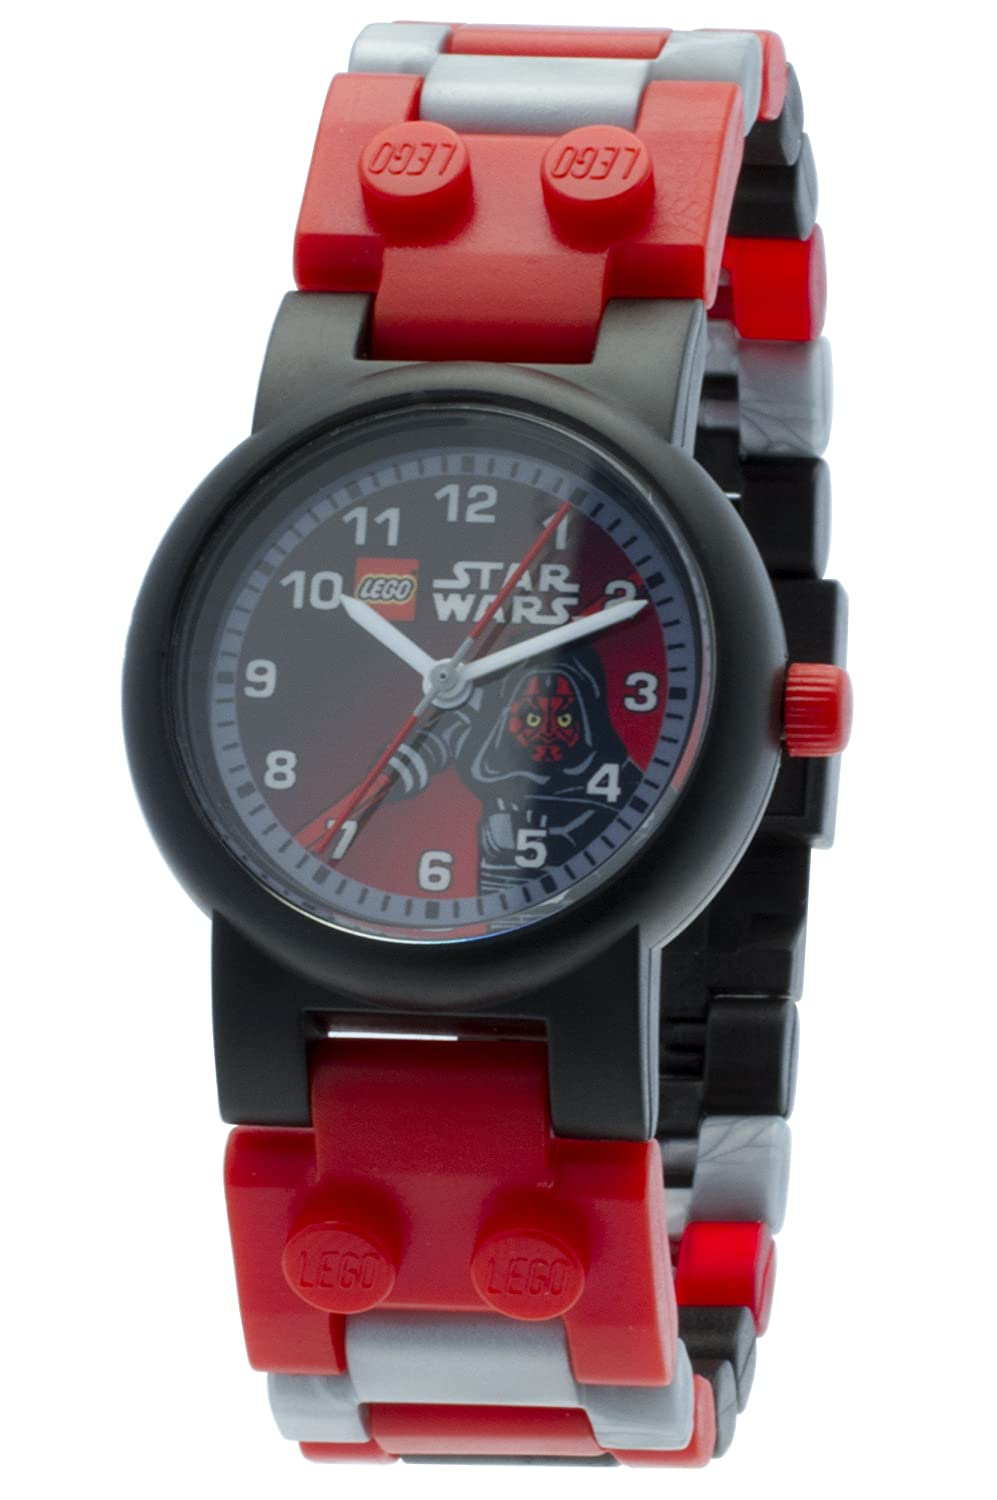 LEGO Star Wars Darth Maul Kids Buildable Watch with Link Bracelet and Minifigure | black/red | plastic | 28mm case diameter| analog quartz | boy girl | official